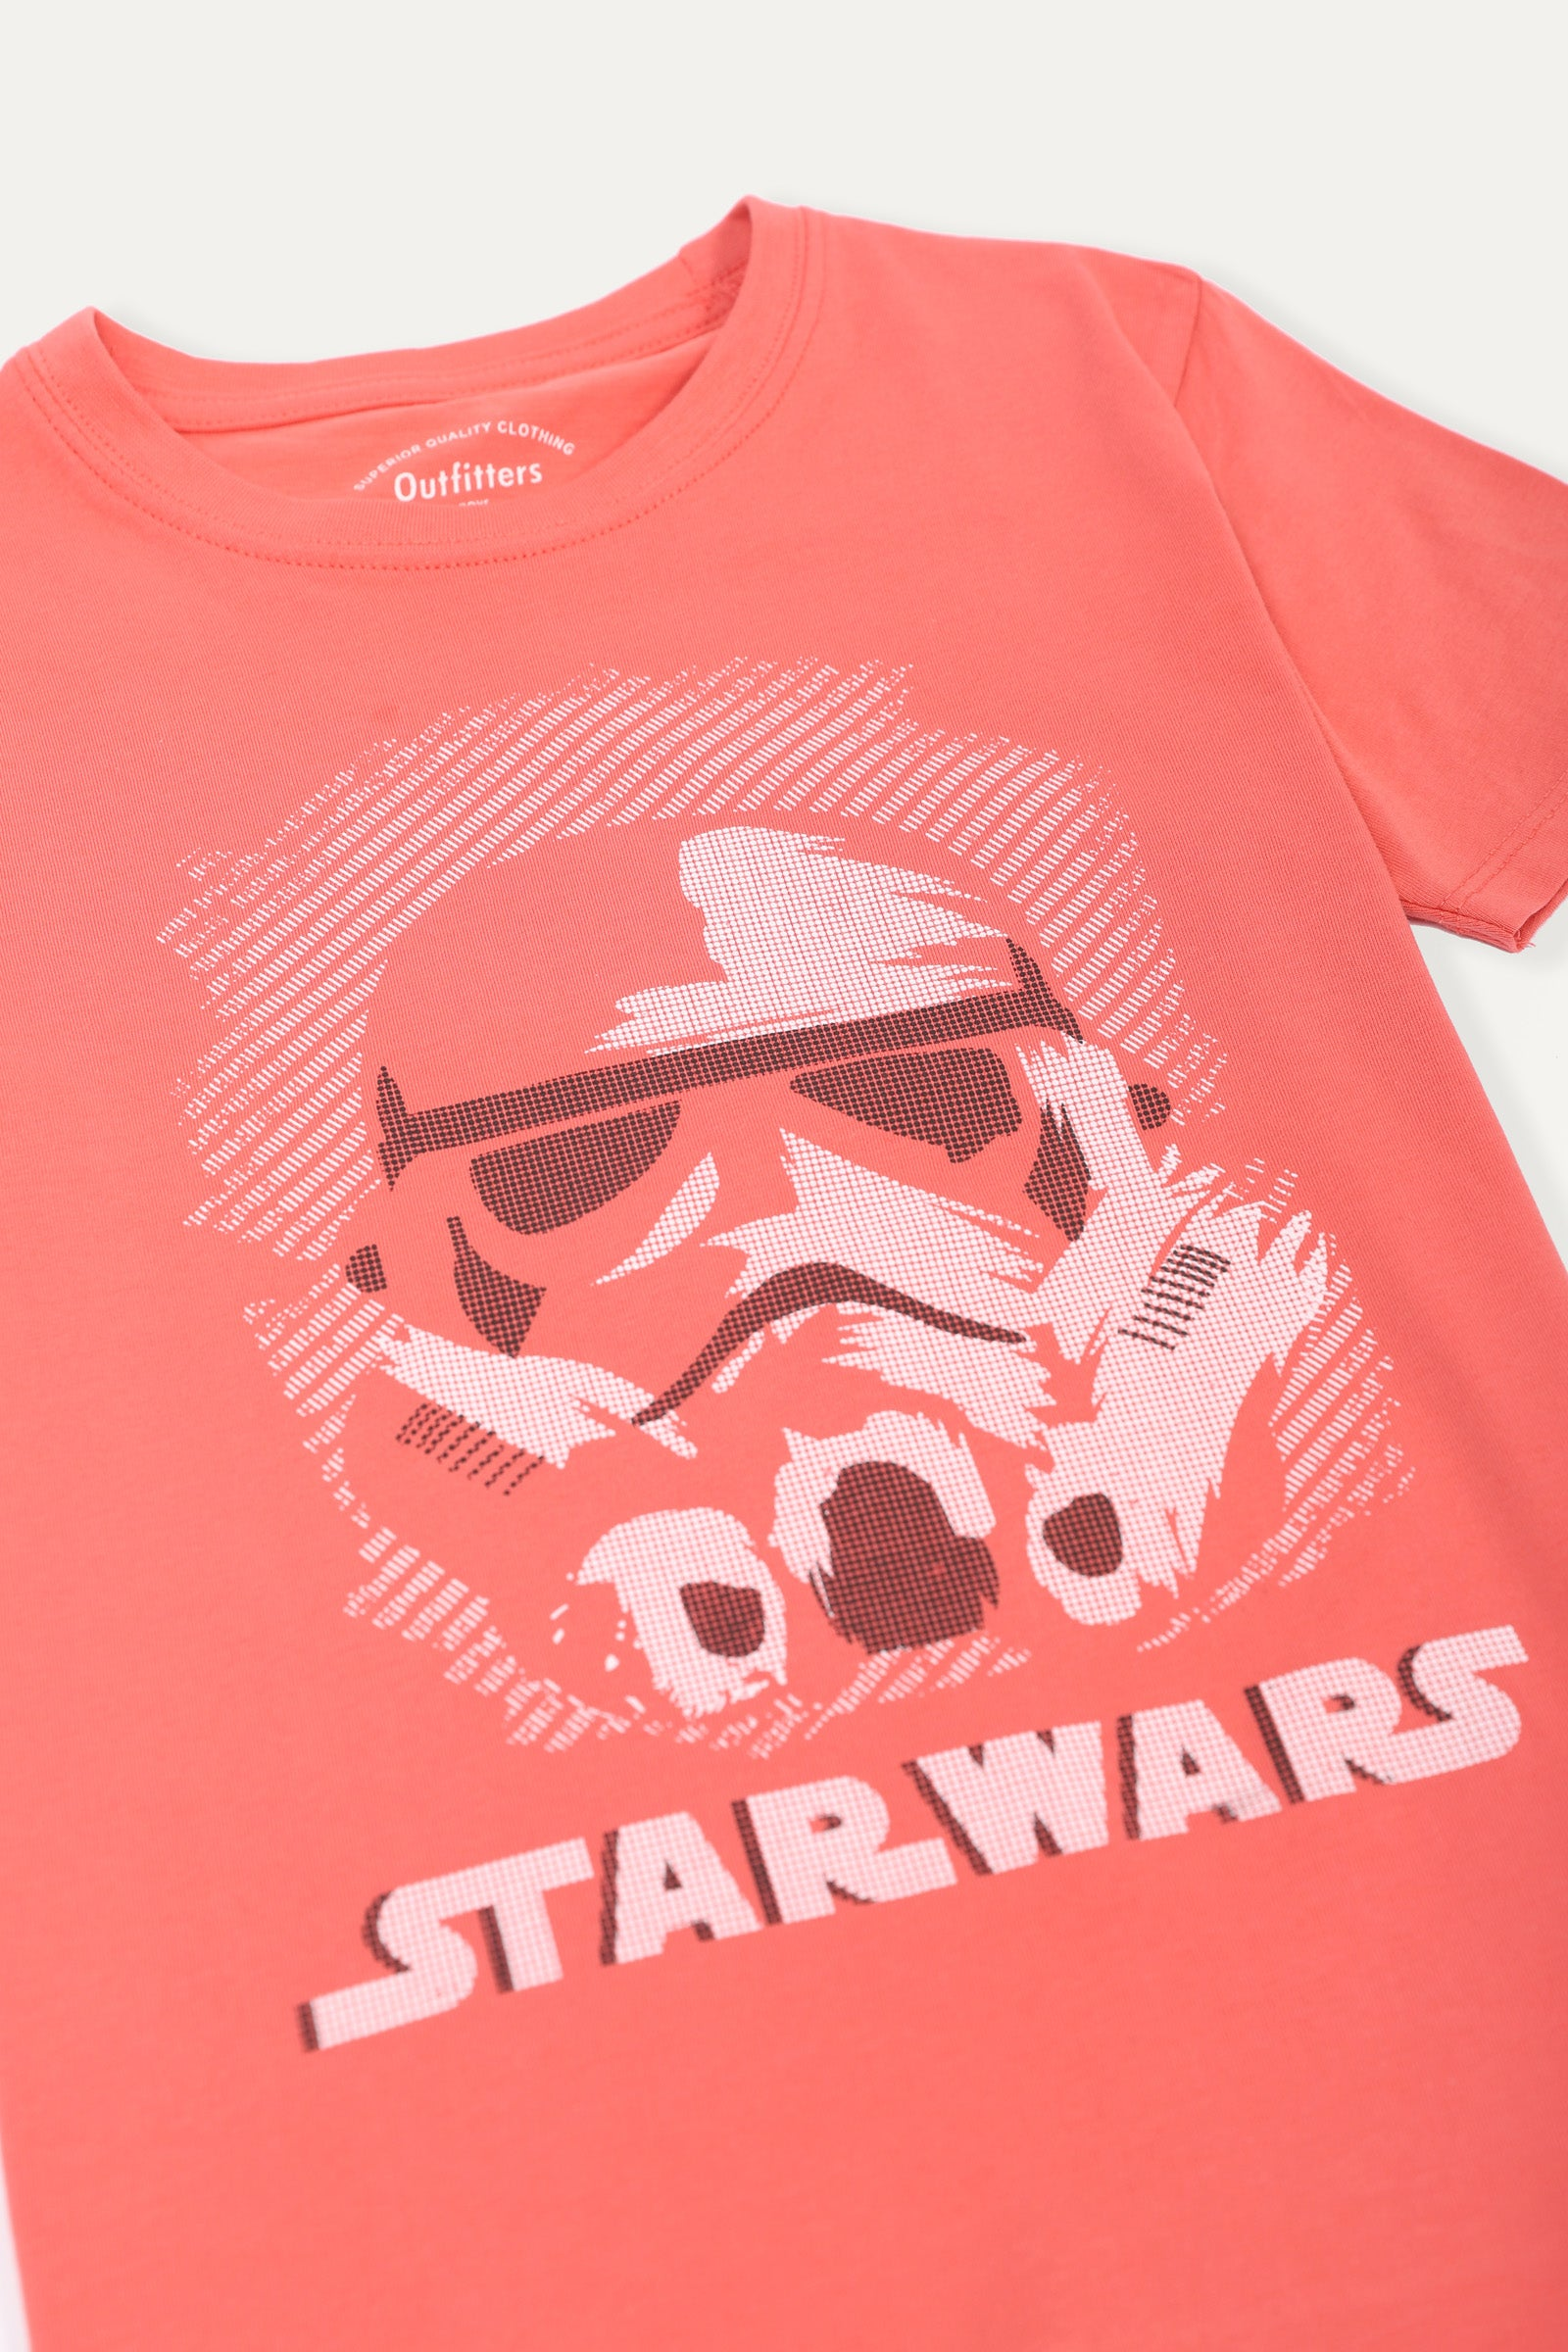 Star Wars' T-shirt